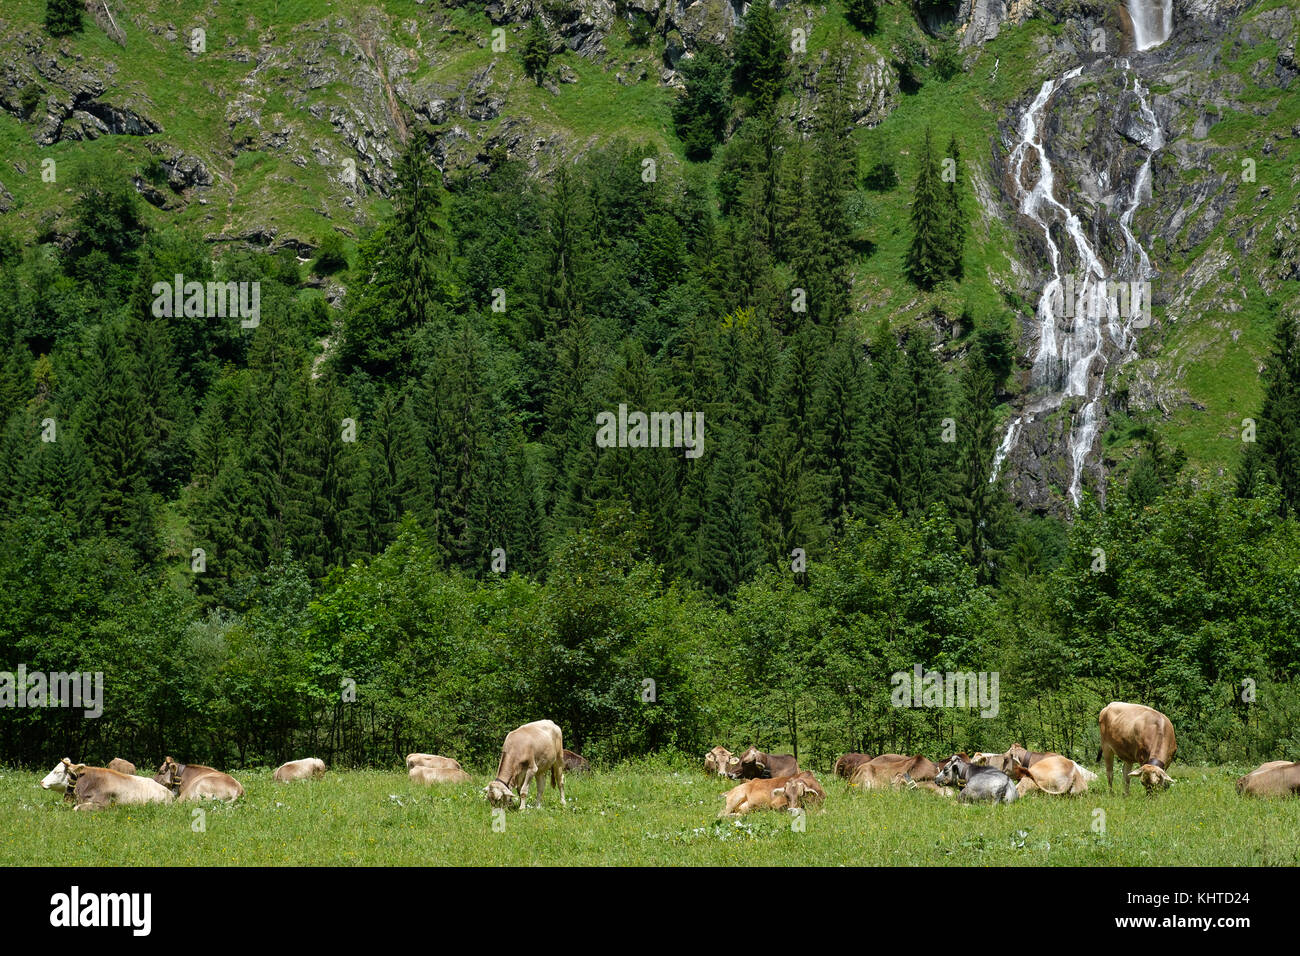 Alp in valley of Oytal Bavaria Germany with cattles, forest and waterfall - Stock Image